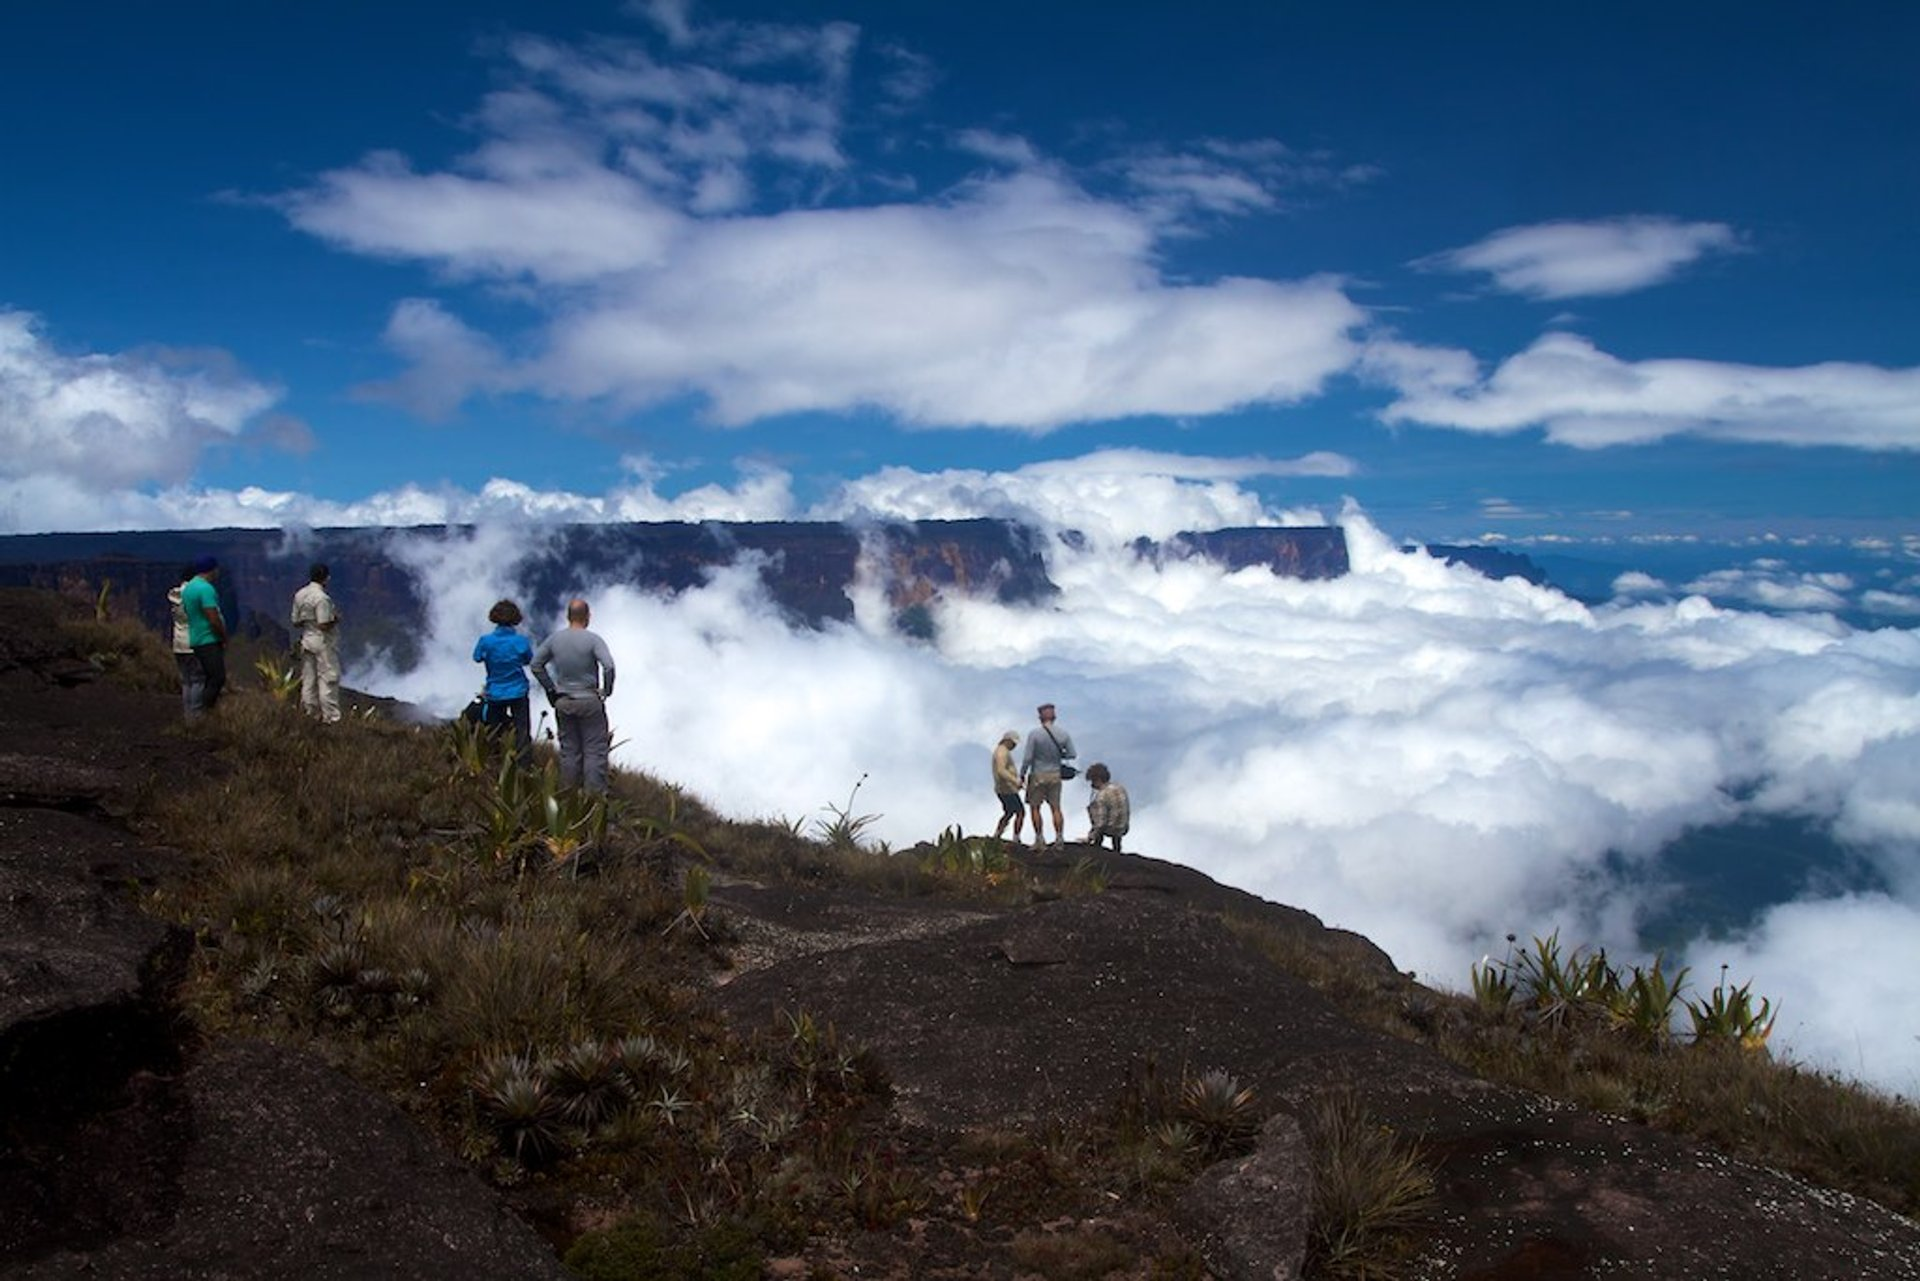 Best time to see Hiking Mount Roraima in Venezuela 2020